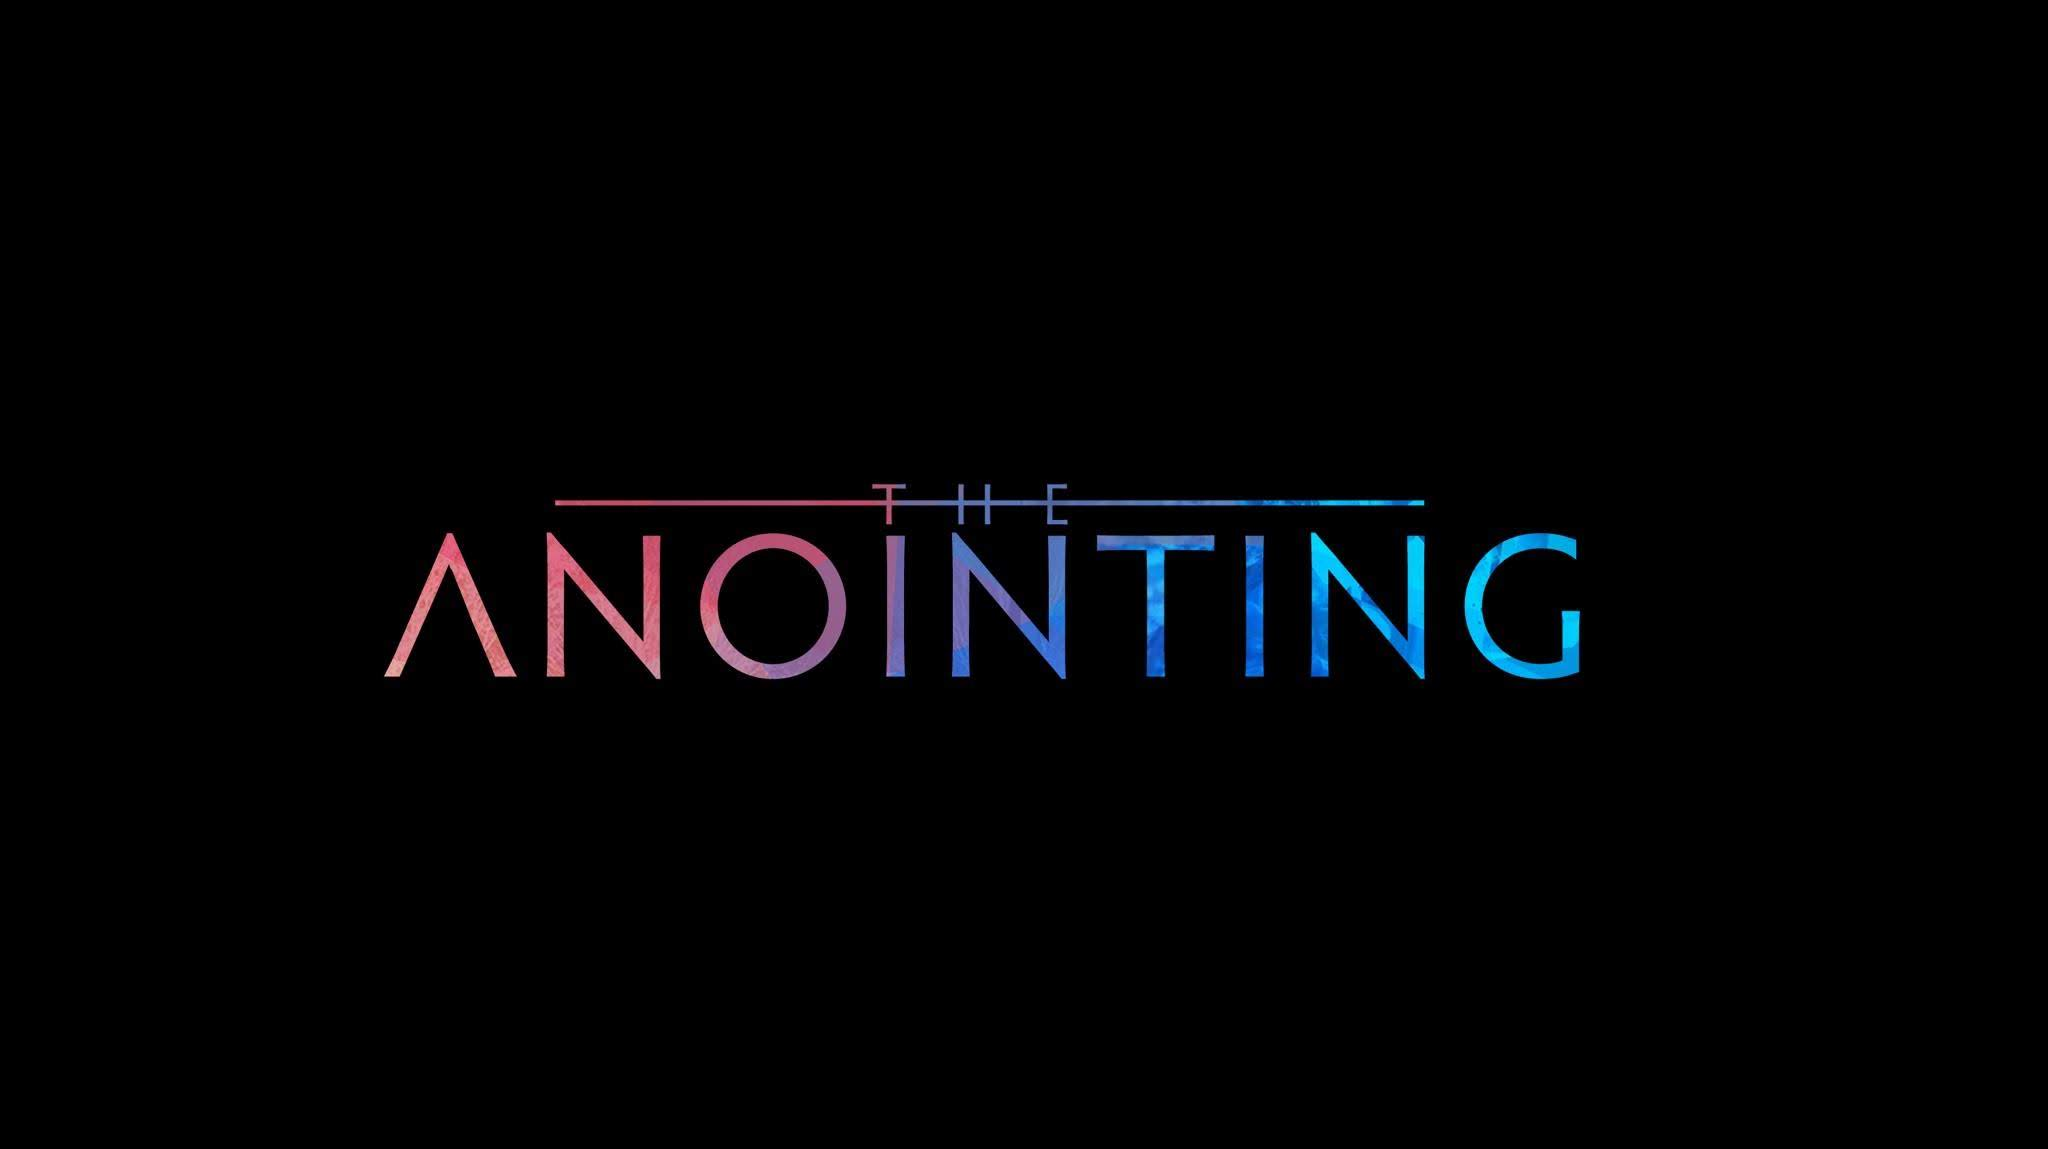 https://vladimirsavchuk.com/resources/anointing-audio-series/